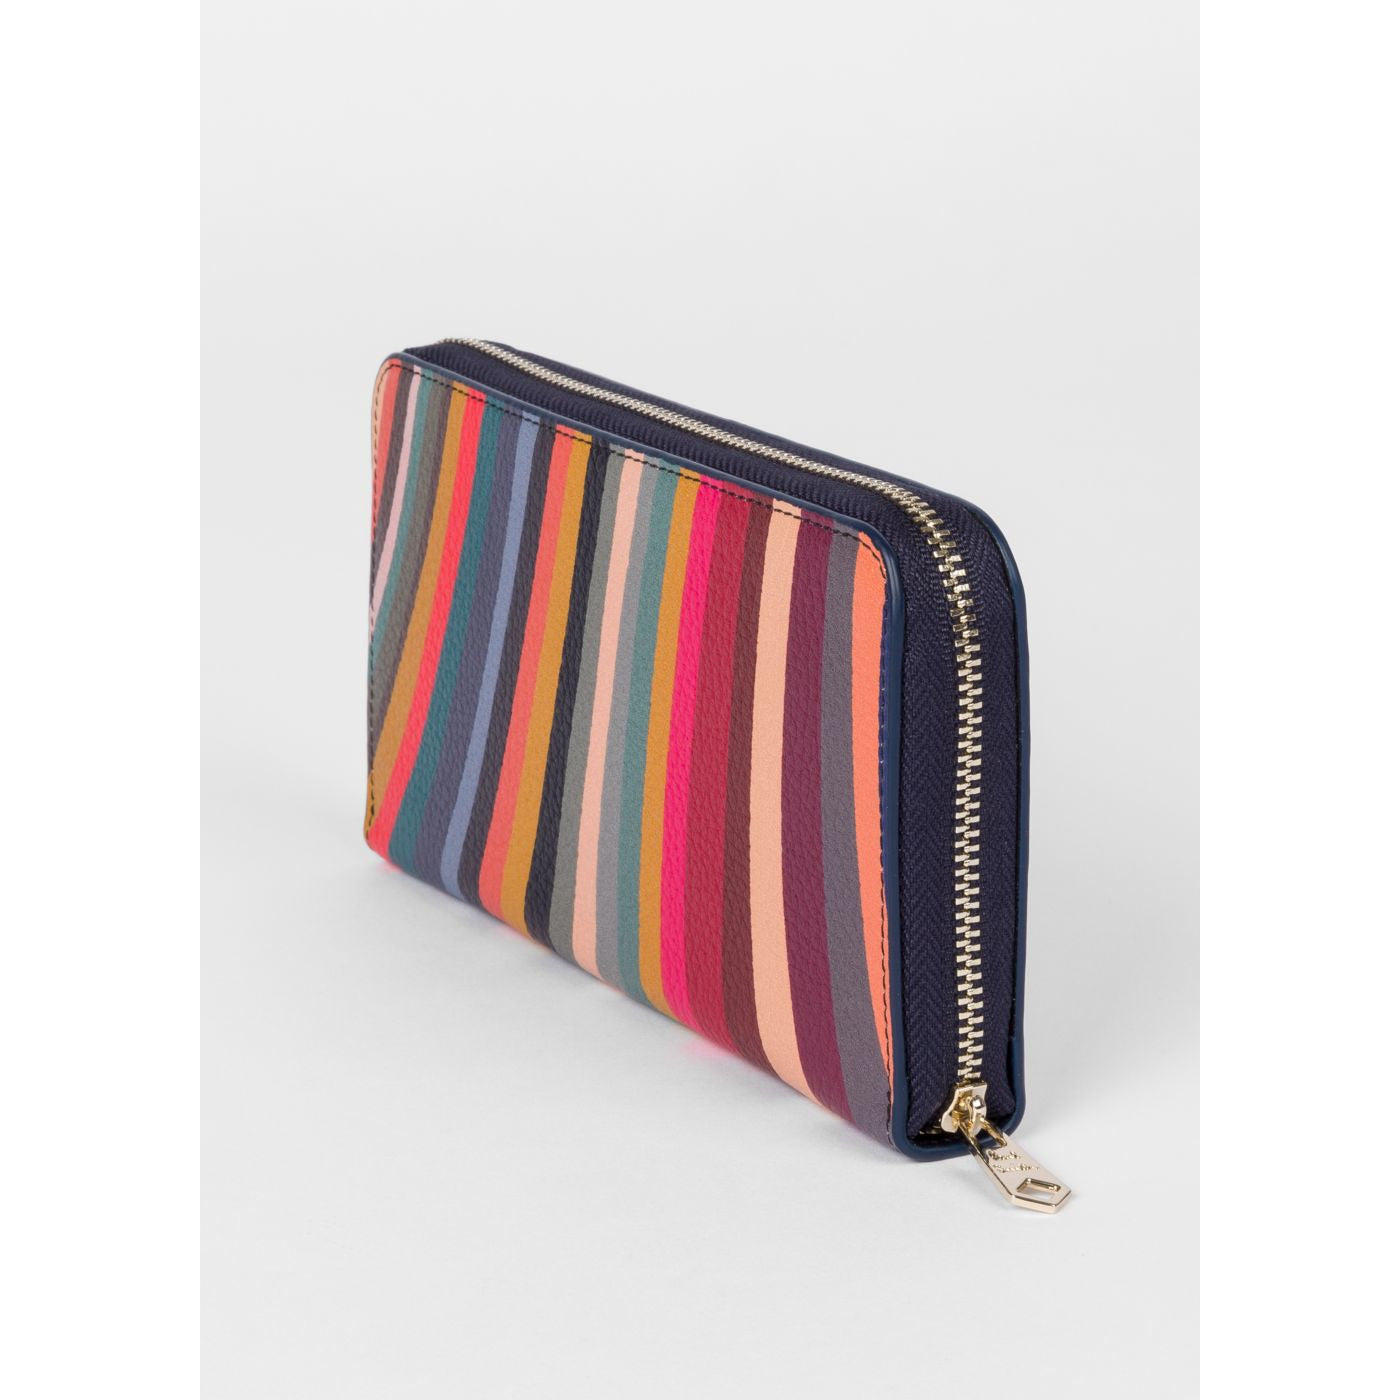 PAUL SMITH LARGE 'SWIRL' PRINT LEATHER ZIP AROUND PURSE